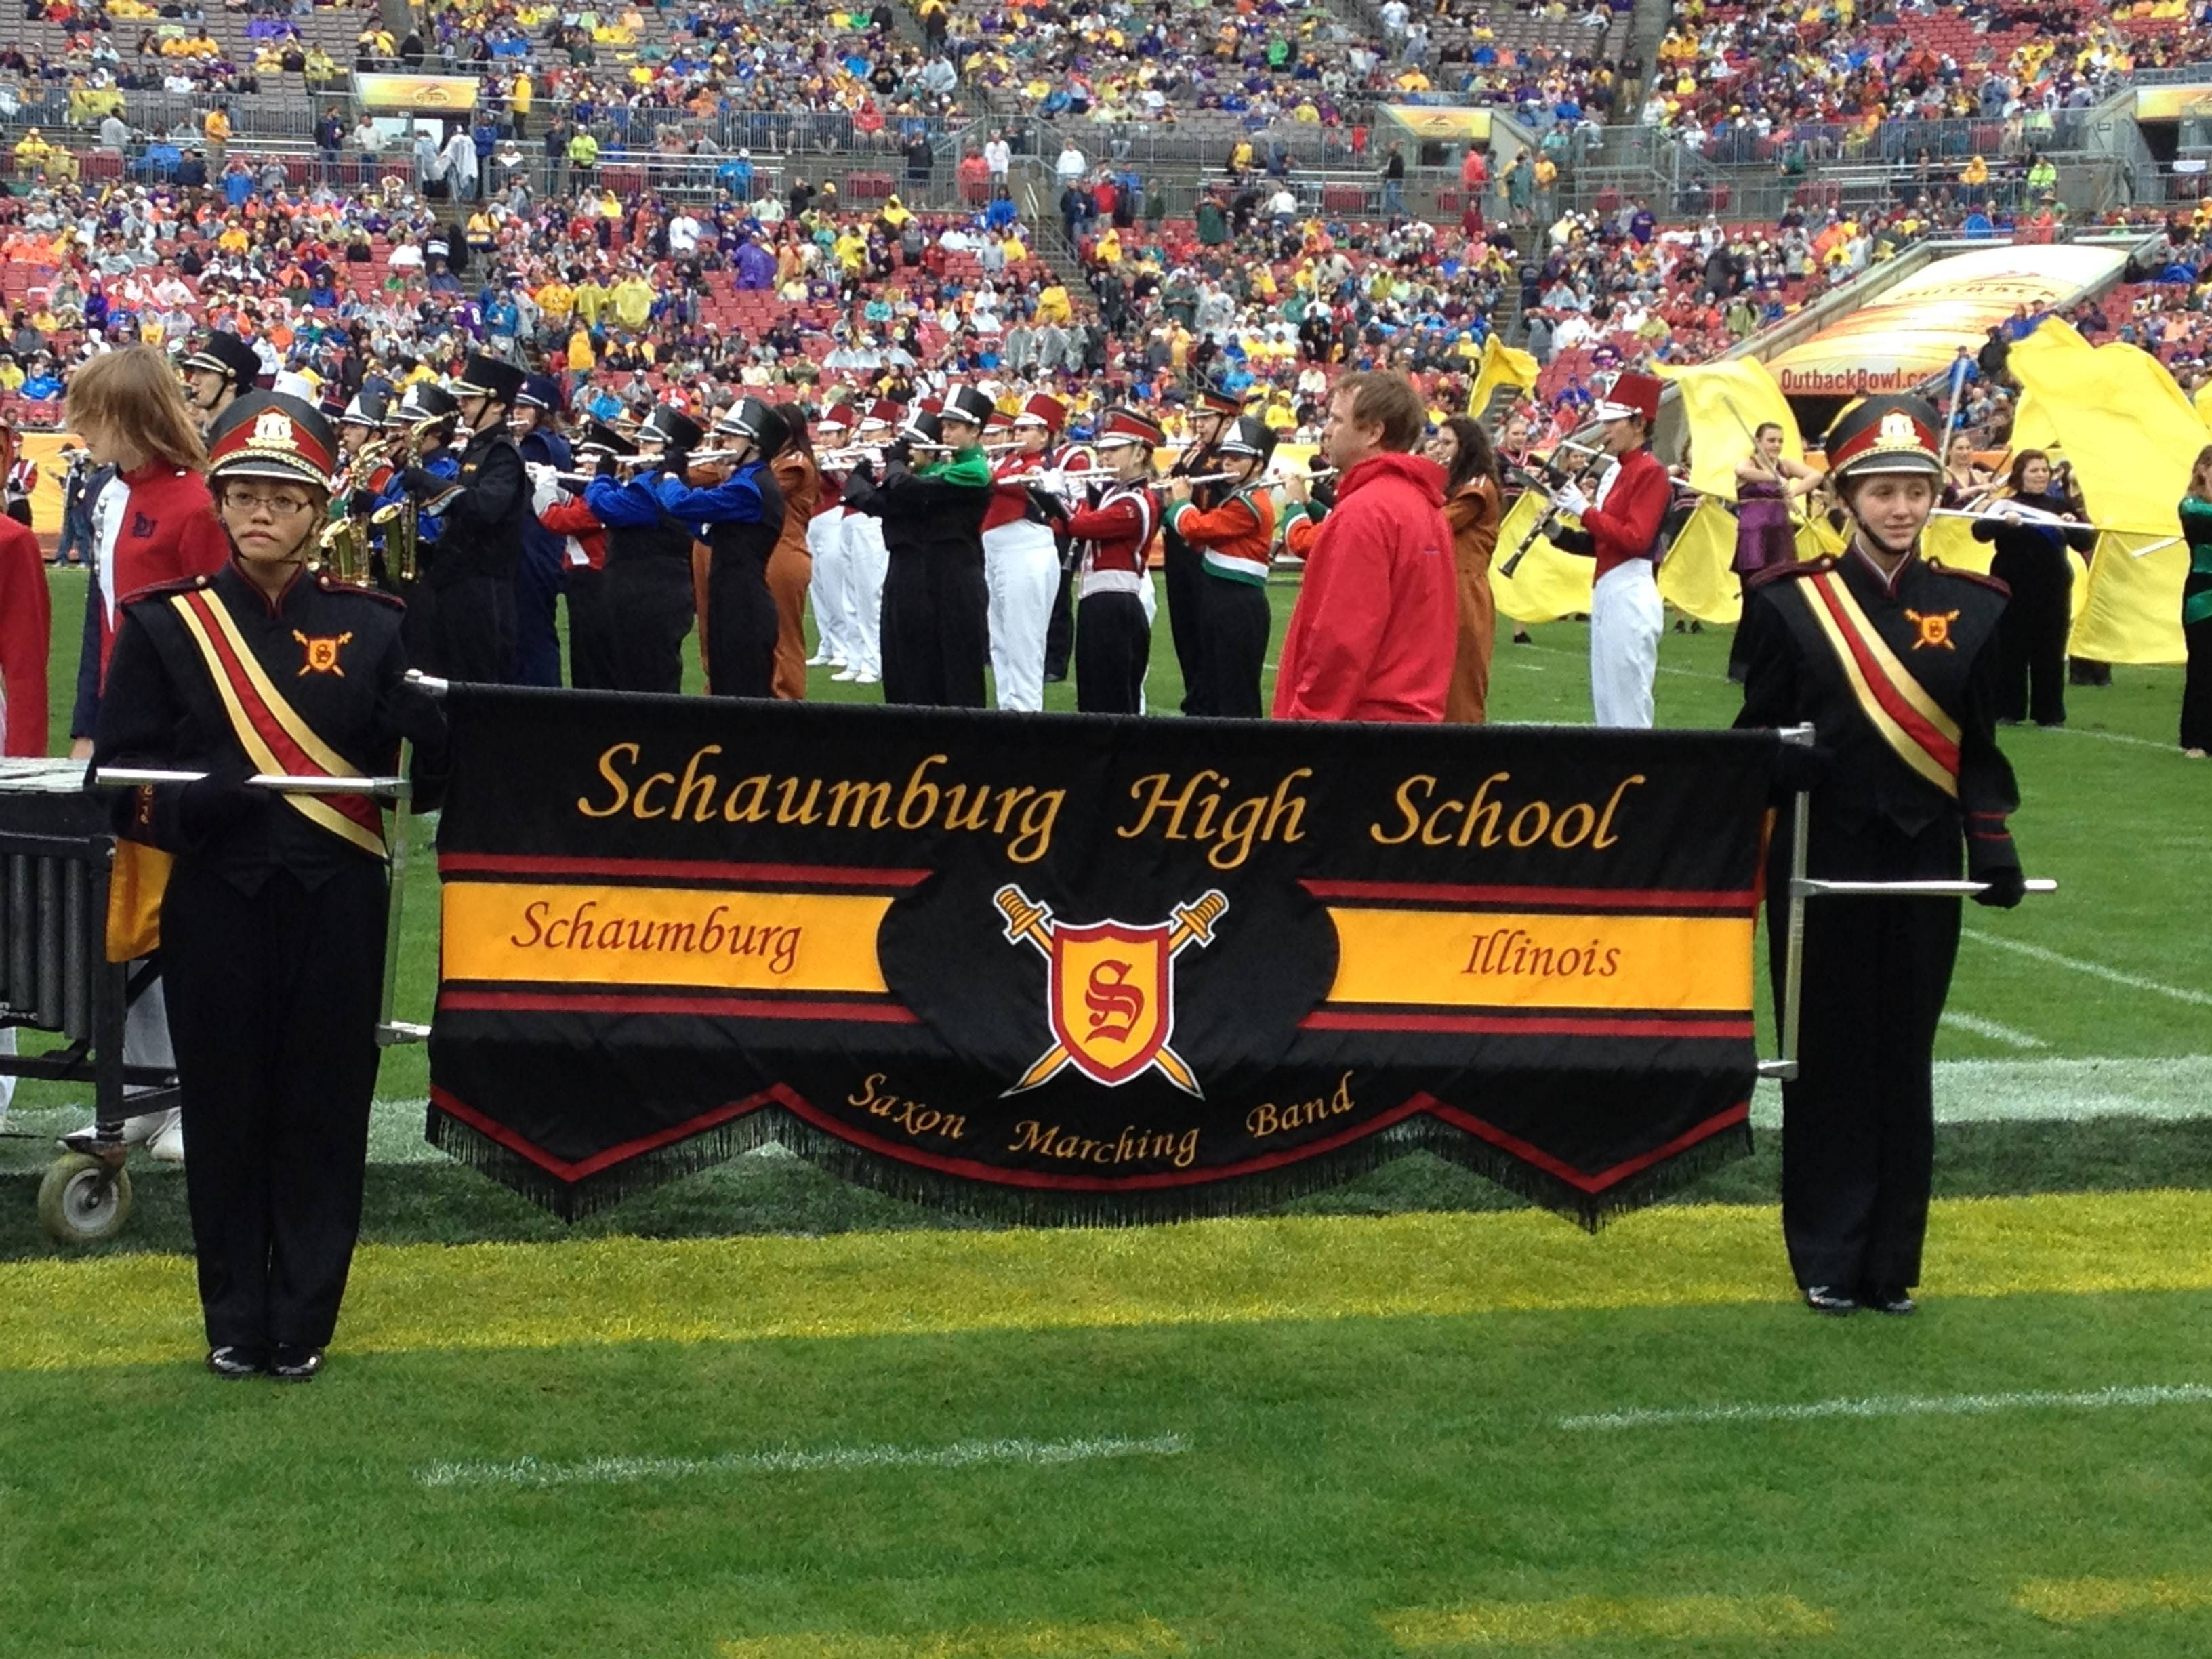 The Schaumburg High School marching band, which in 2014 performed at the Outback Bowl in Florida, will take part in the halftime show at the 2016 Sugar Bowl in New Orleans on Jan. 1.